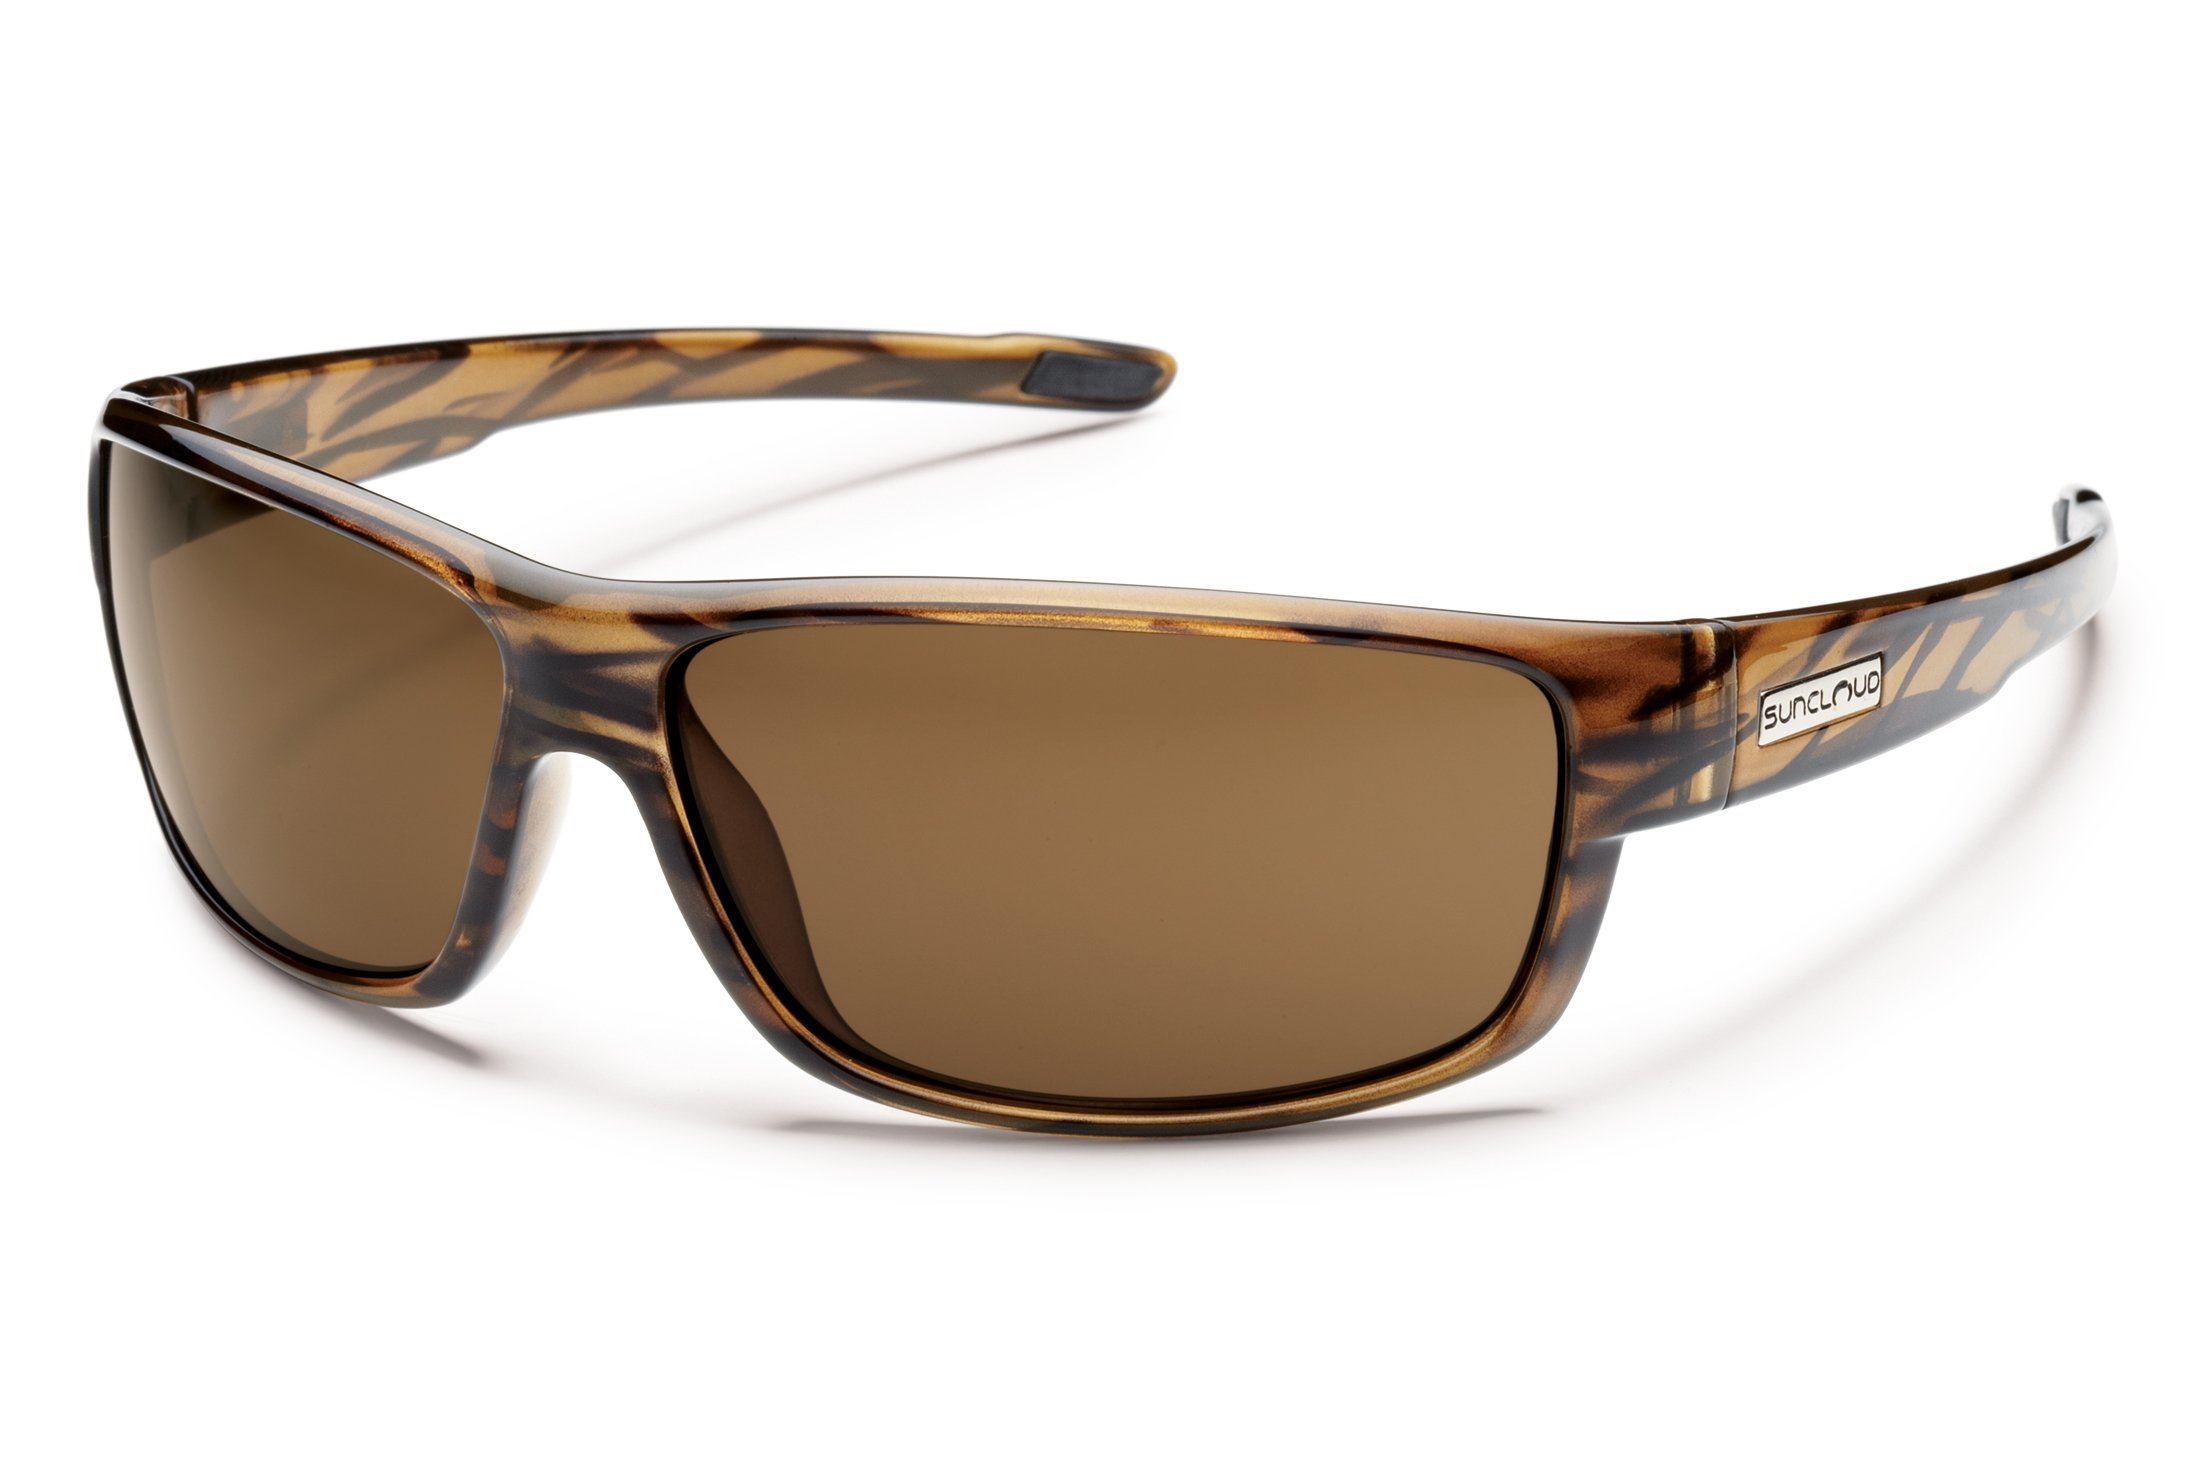 Suncloud Optics Voucher Injected Frames Polarized Sports Sunglasses - Brown Stripe/Brown by Suncloud